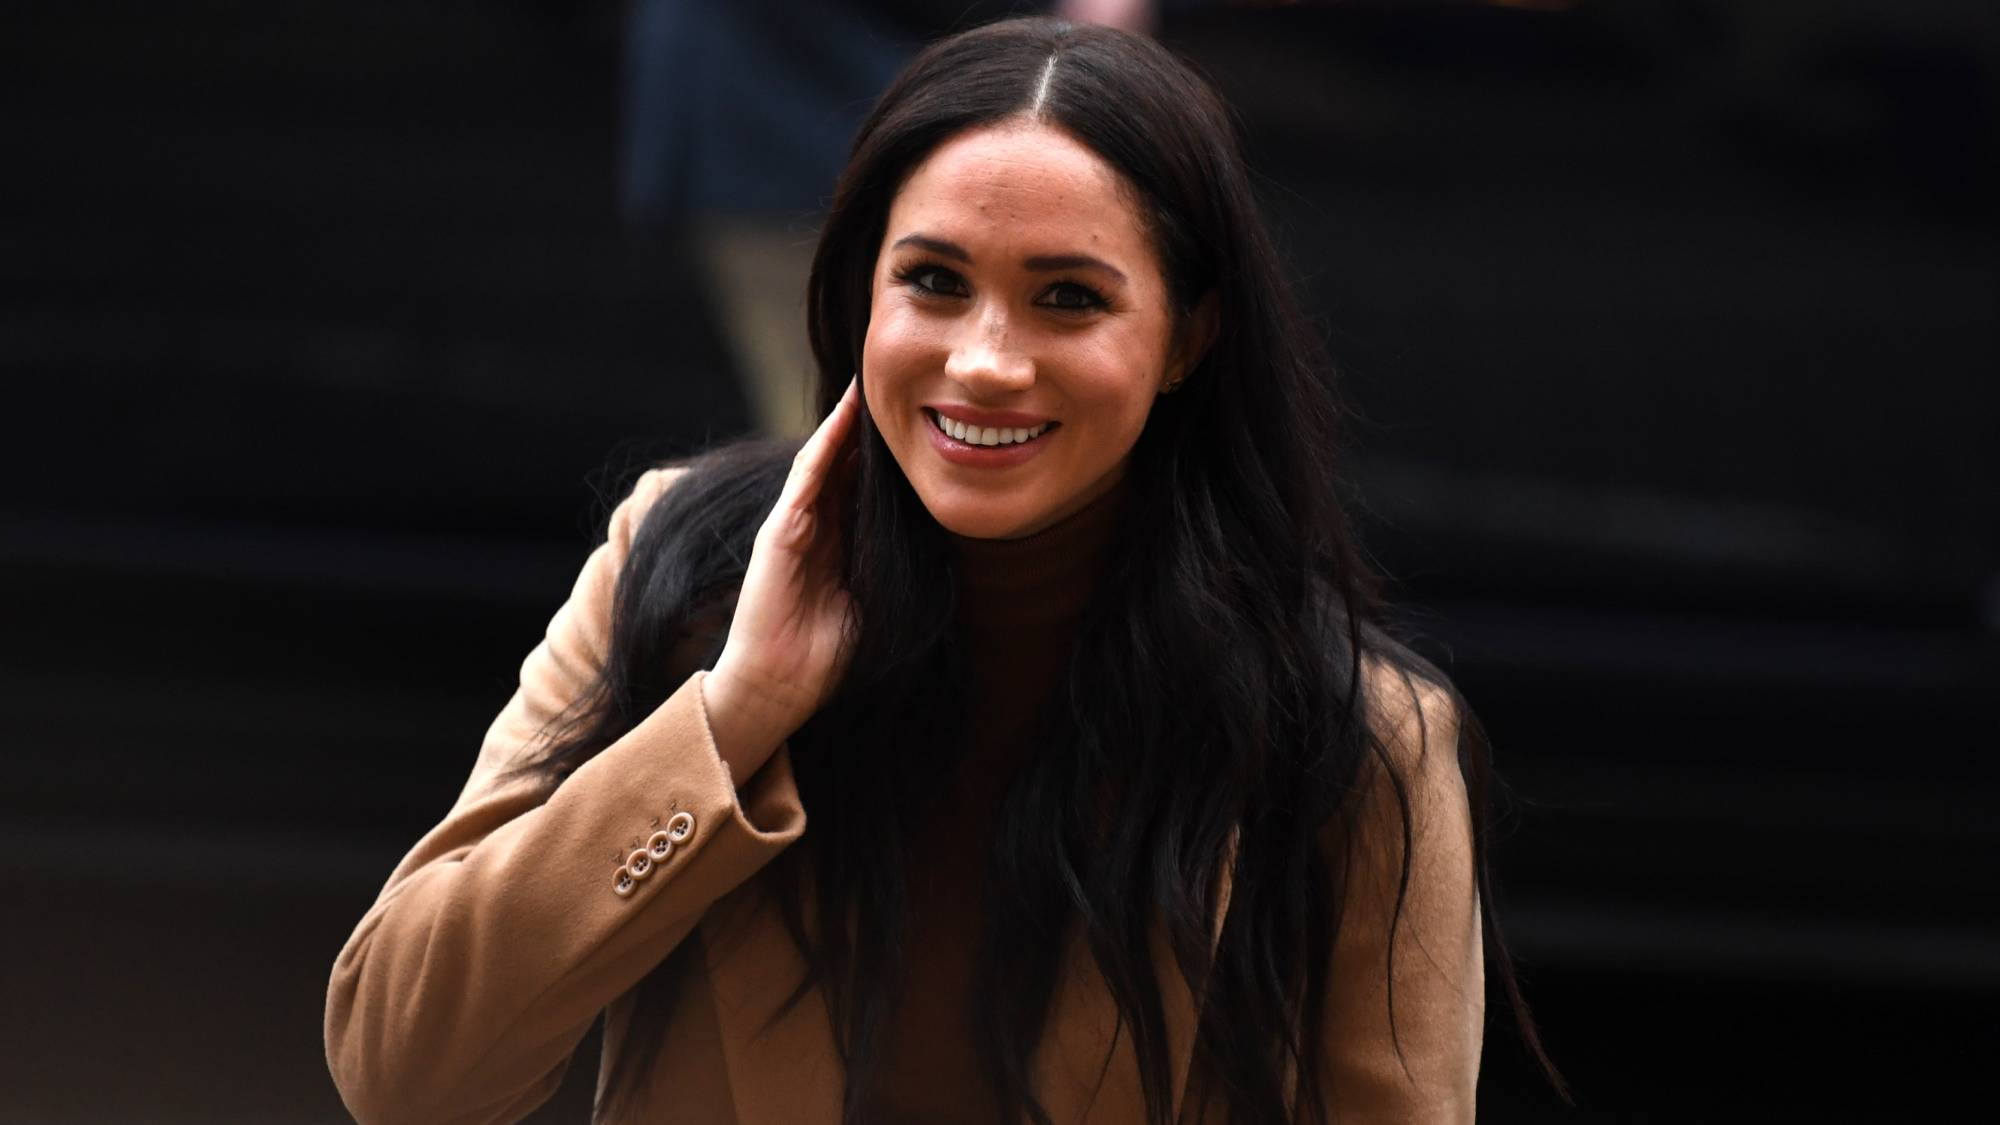 Meghan Markle was spotted at a women's shelter in Canada